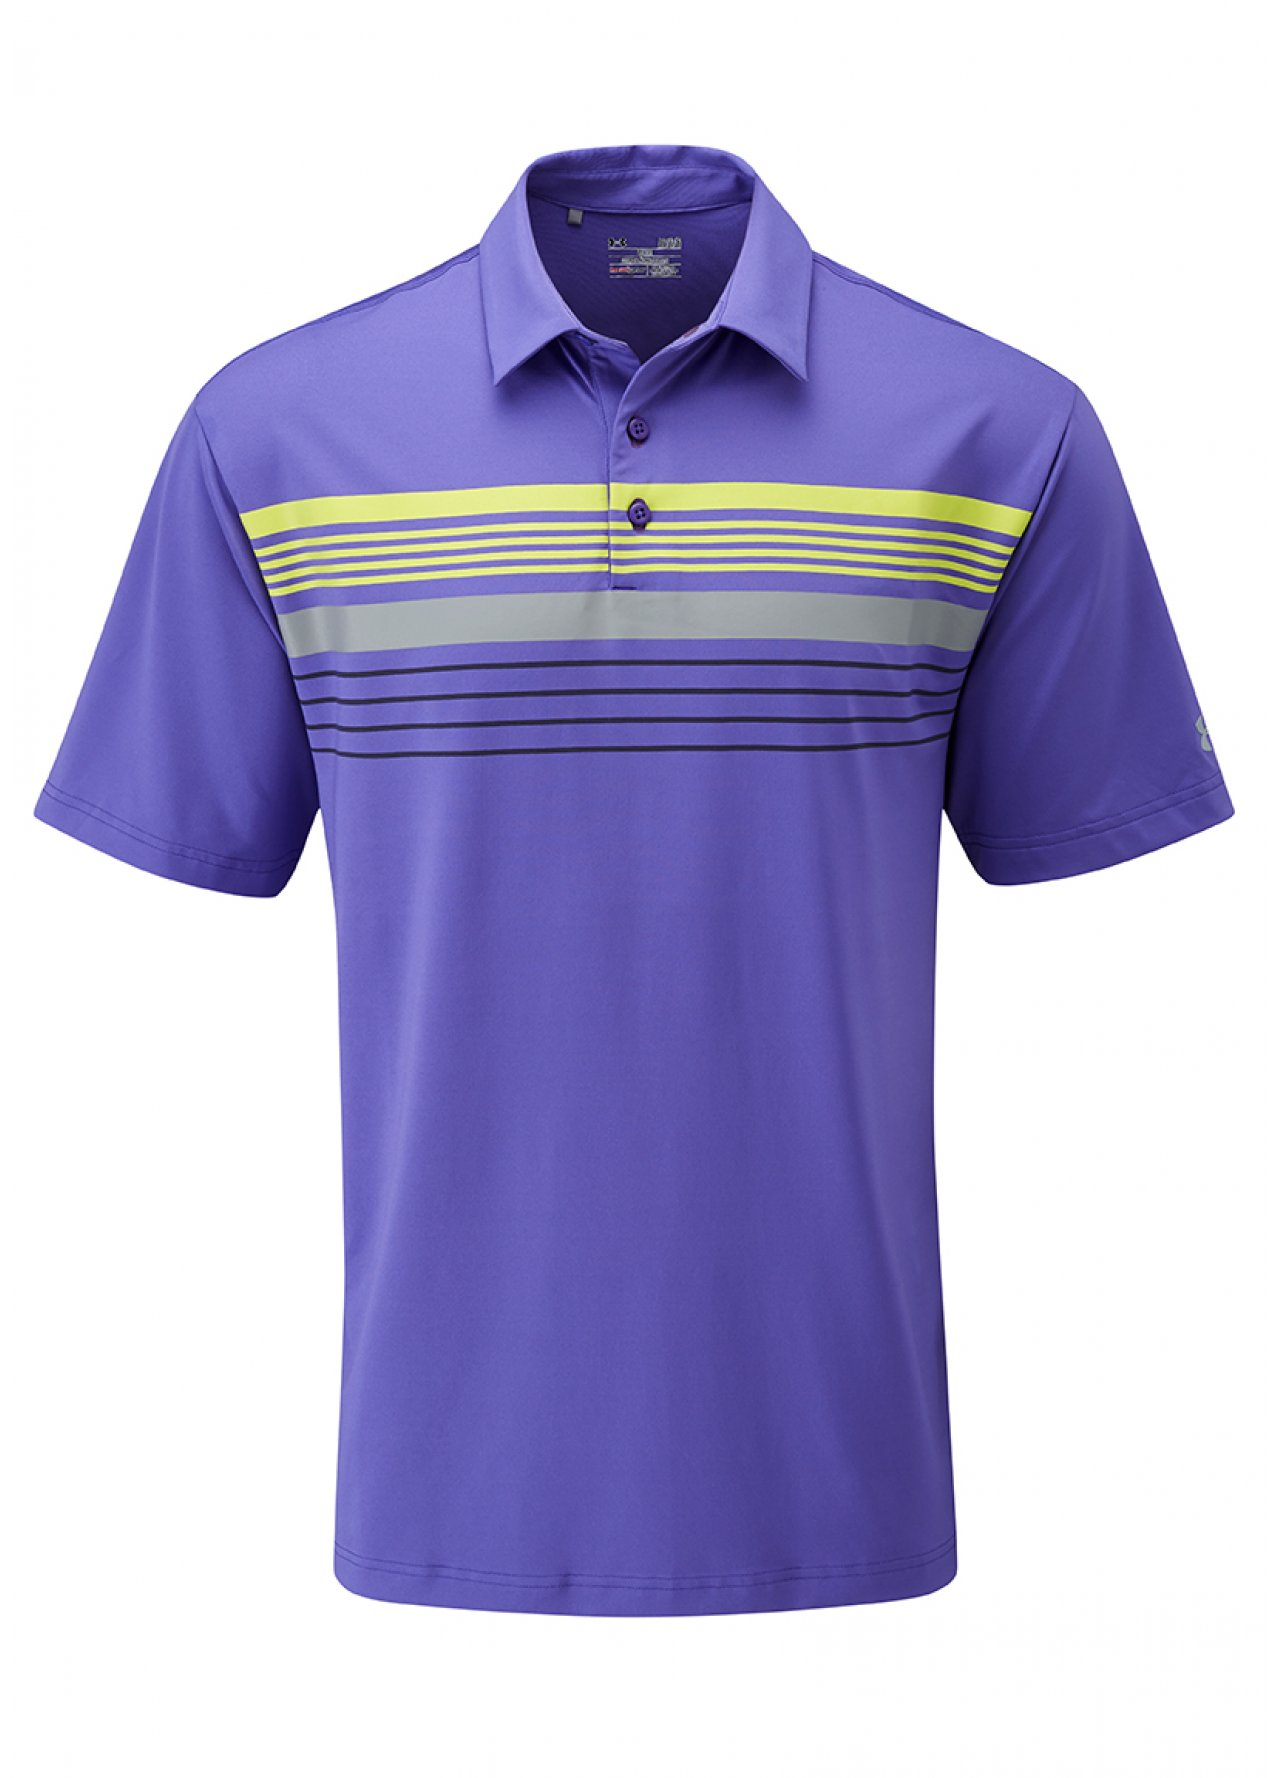 Golf Clothing Shirts Under Armour Golf Gimme Polo